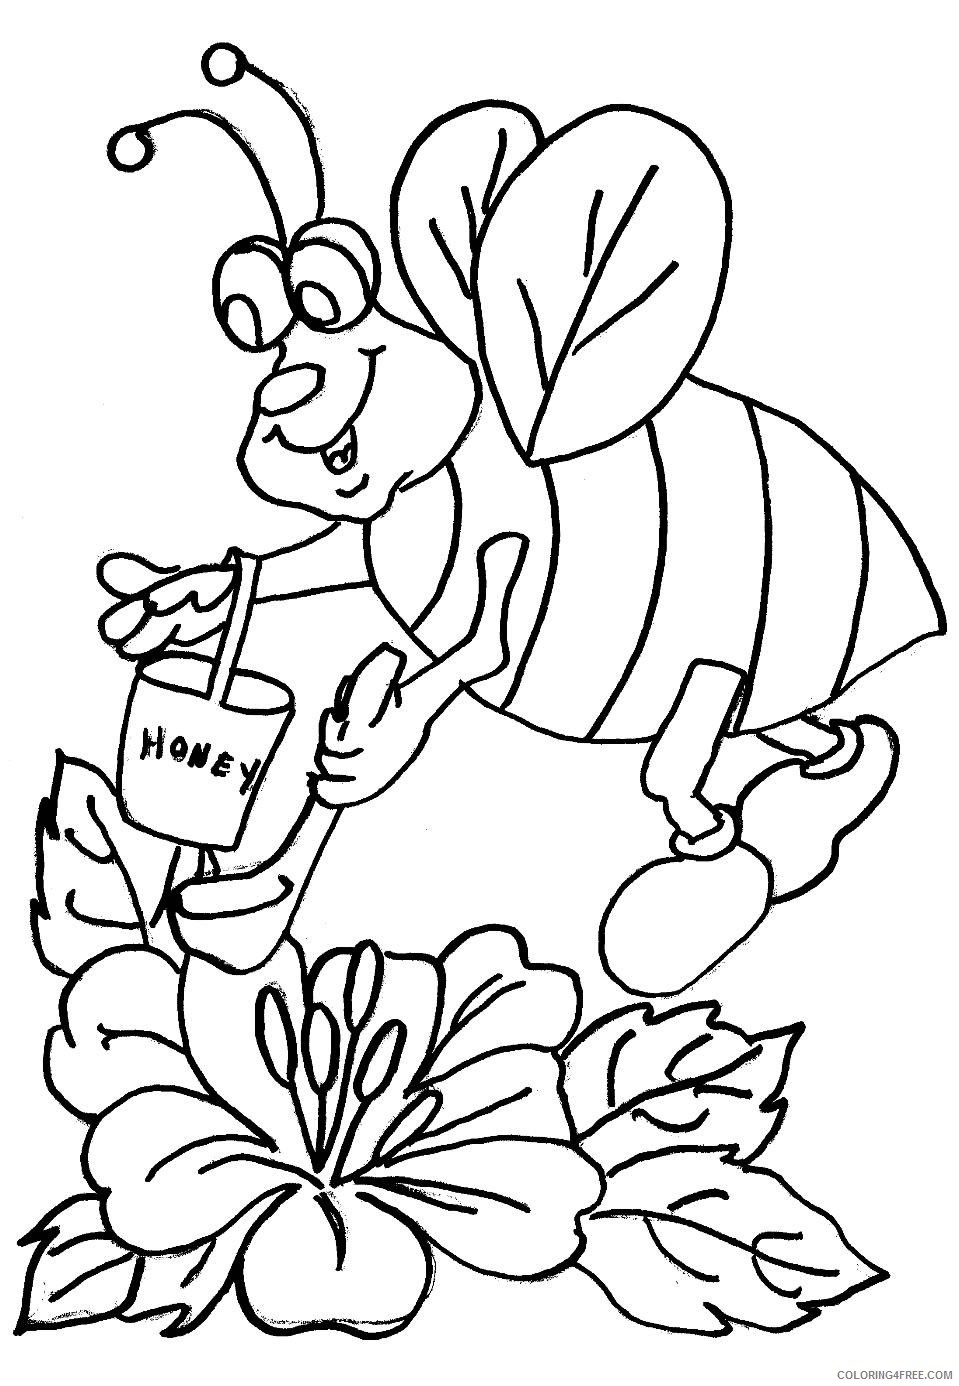 honey bee coloring pages free to print Coloring4free